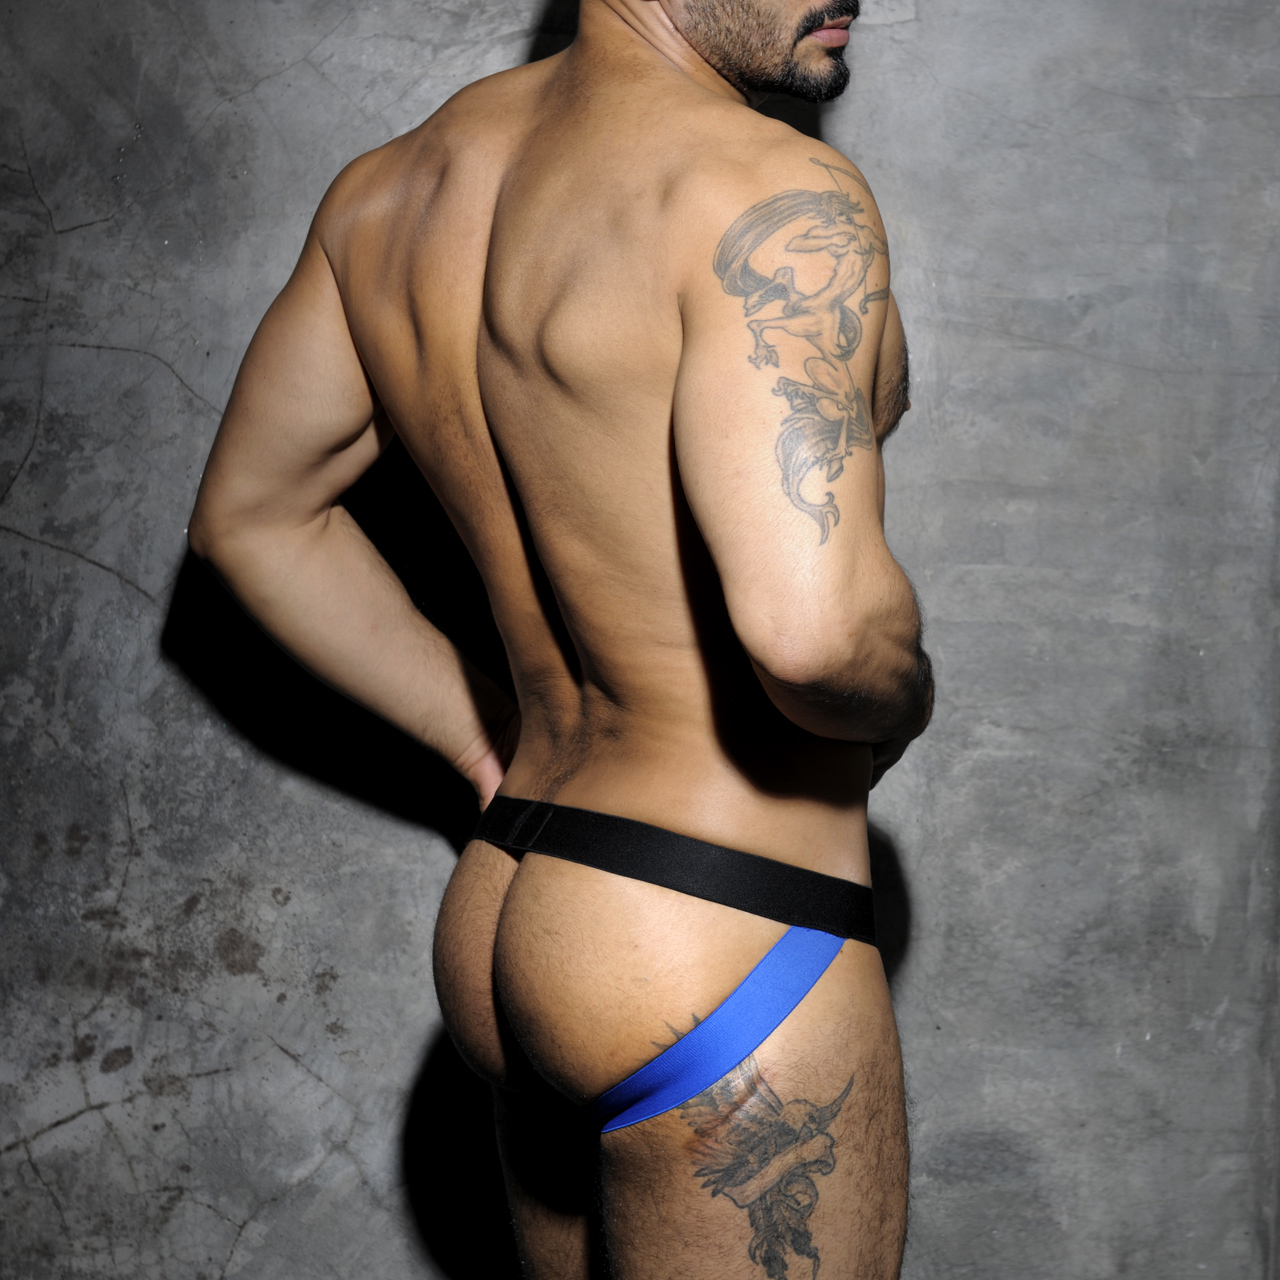 ADDICTED FETISH MESH JOCKSTRAP - Blue